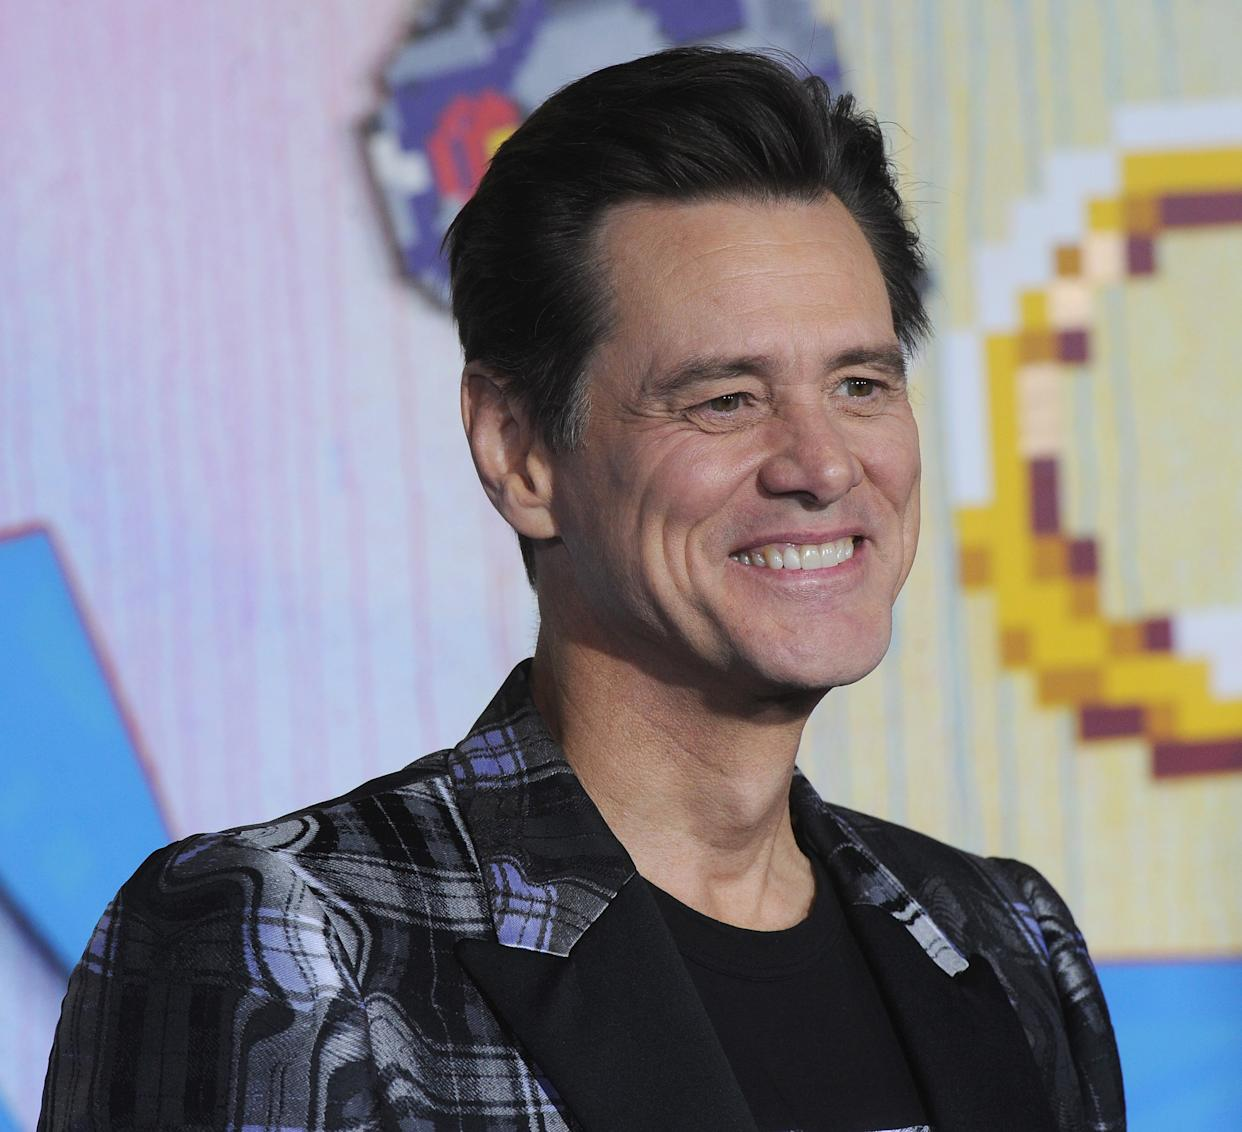 """Jim Carrey's publicist blasts """"ridiculous"""" story over the actor's remark to female reporter that she's on his """"bucket list."""""""